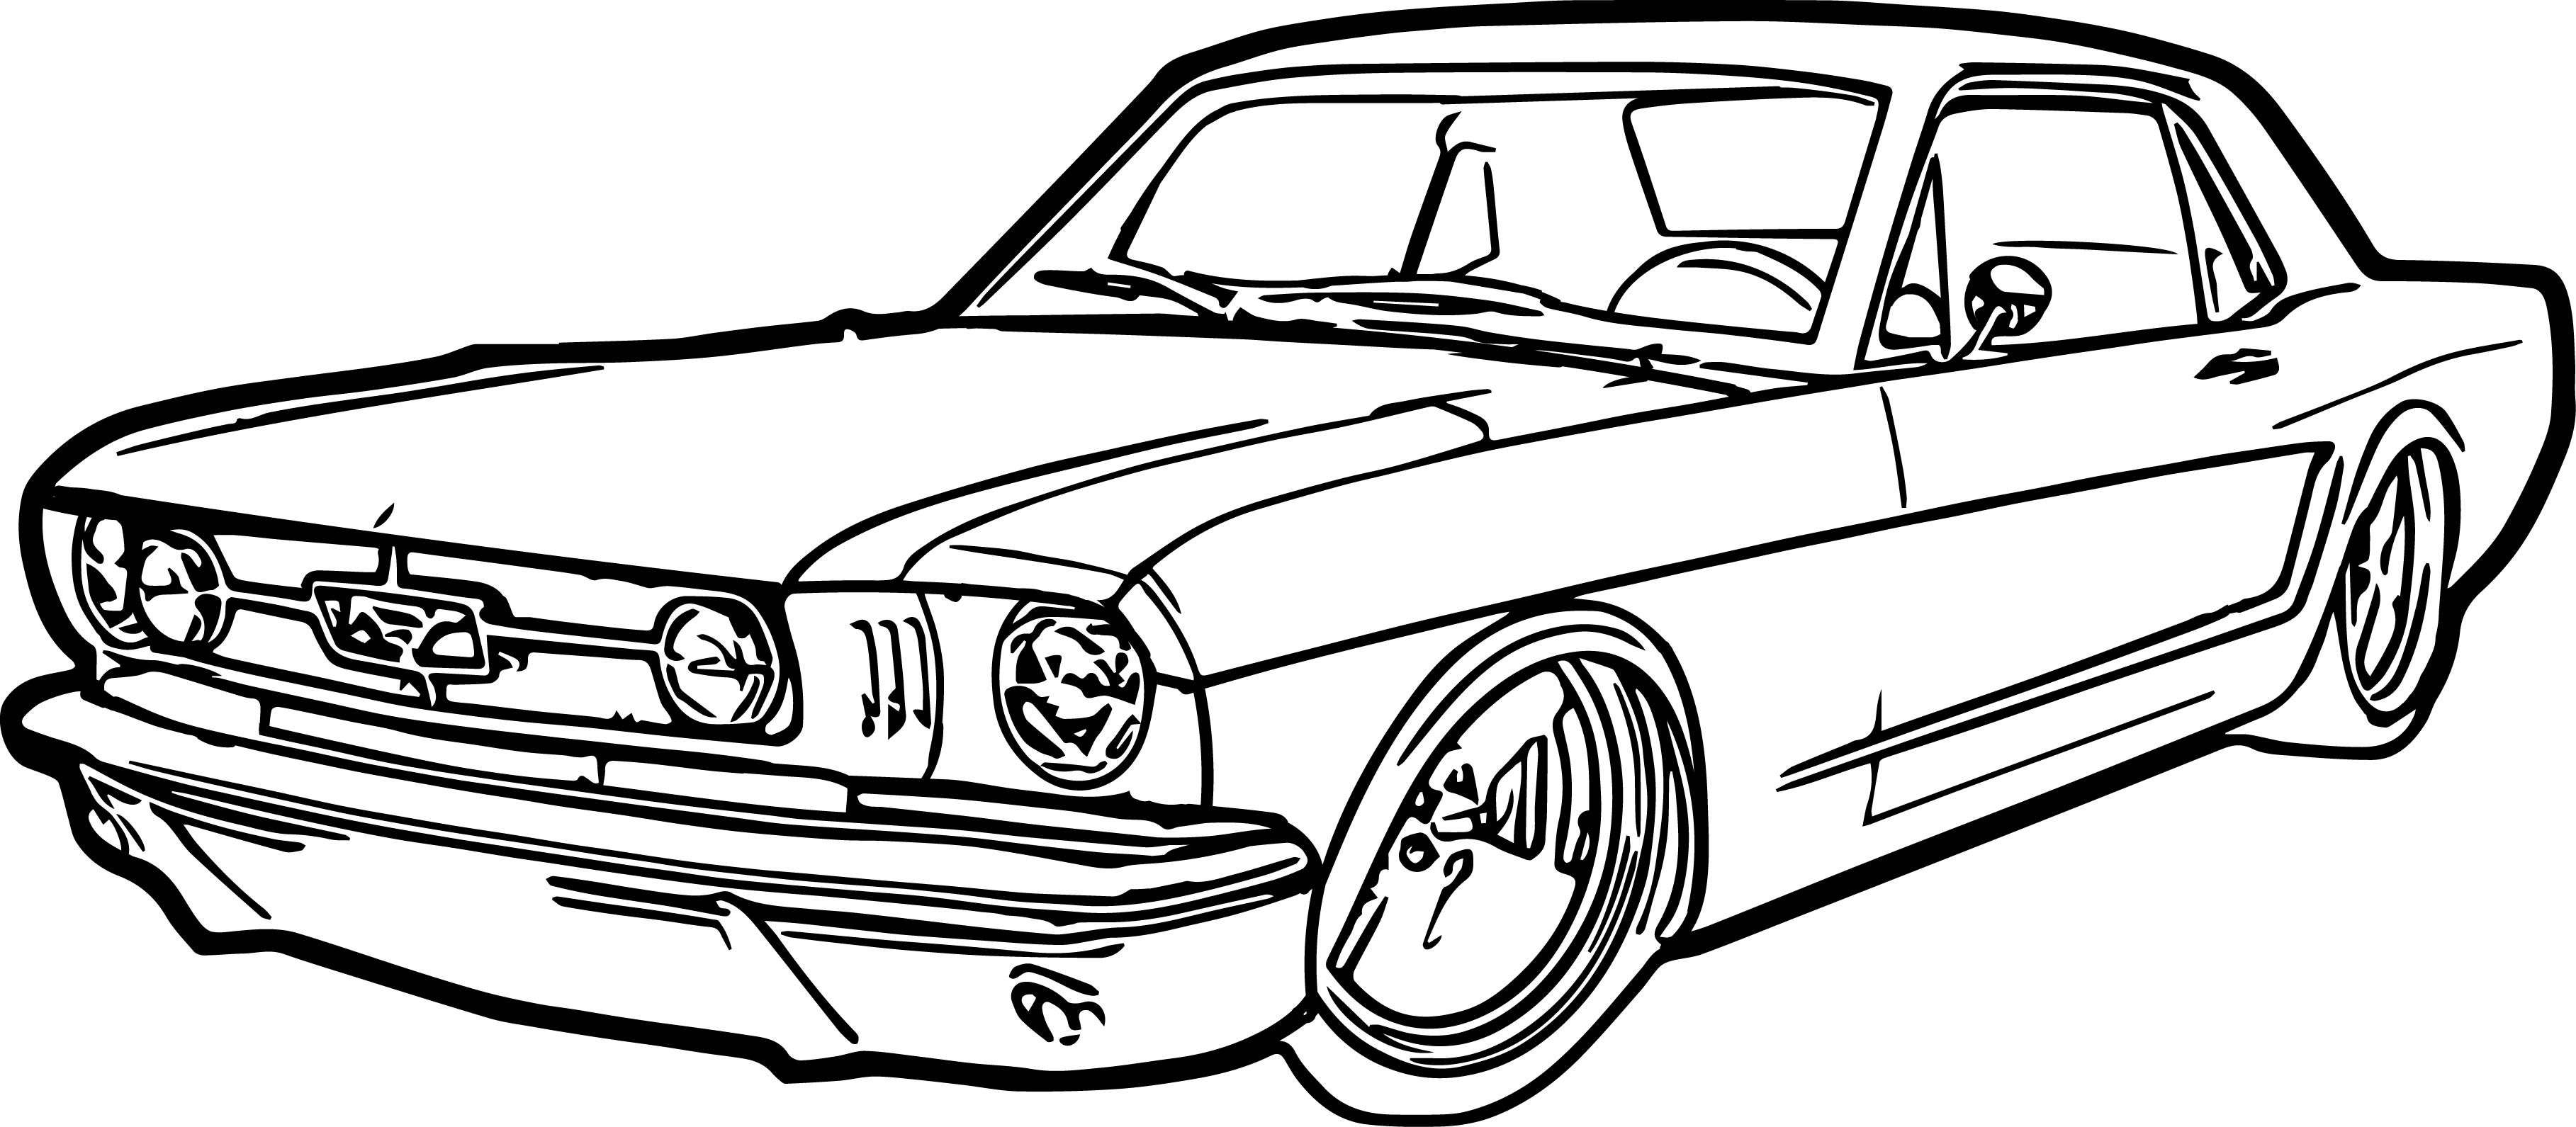 Old Cars Coloring Pages  to Print 15j - Save it to your computer